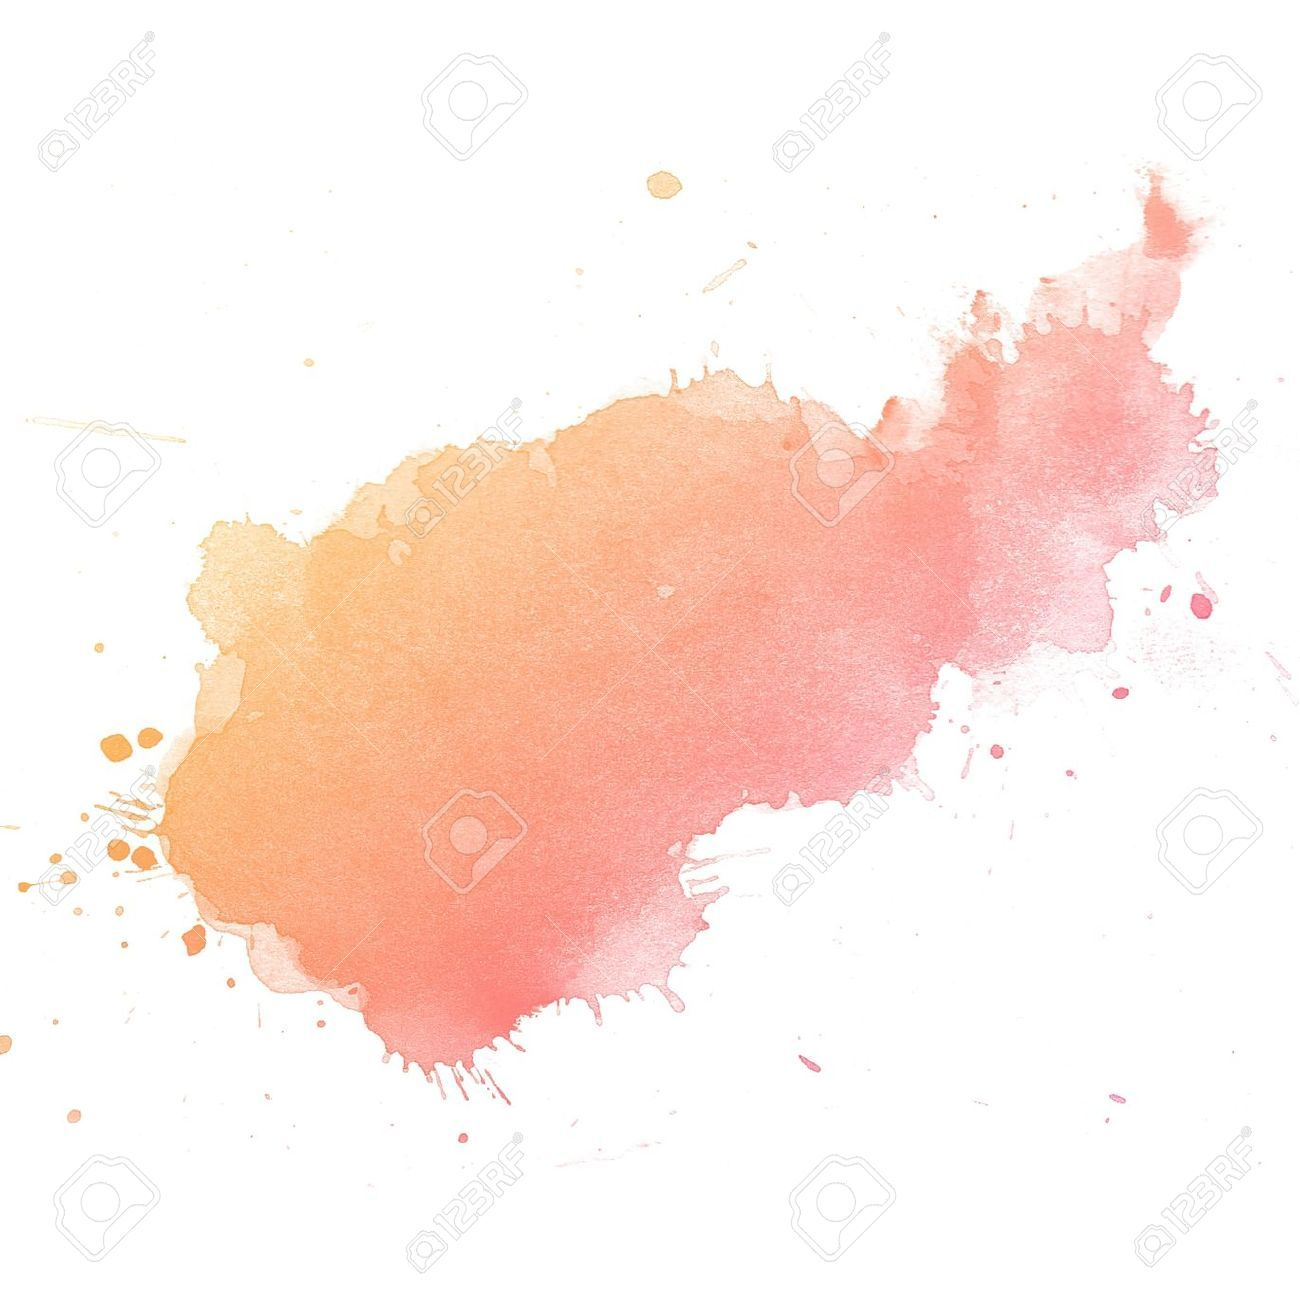 Stock Photo In 2020 Watercolor Splash Png Abstract Watercolor